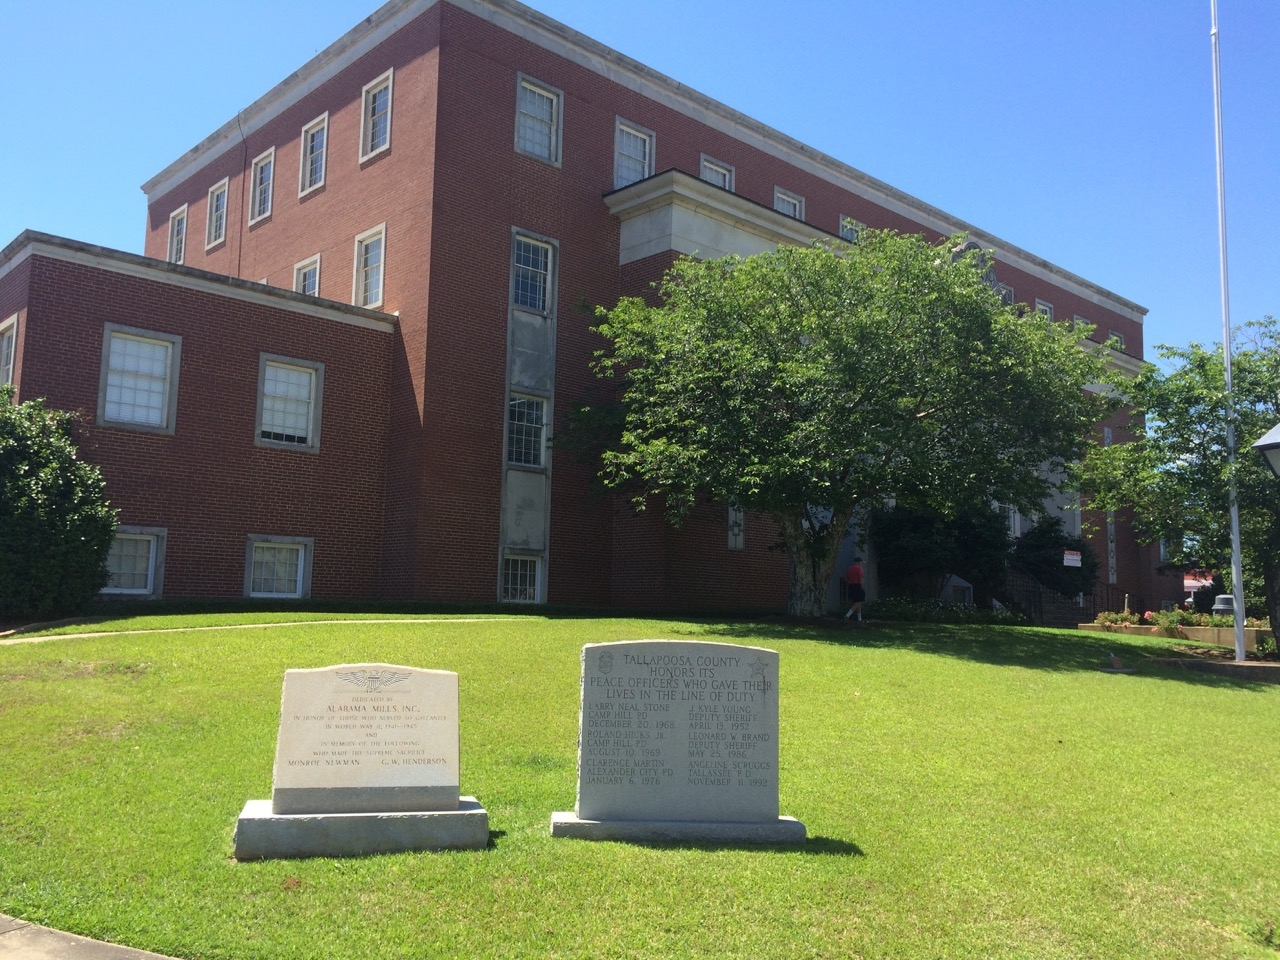 Alabama Mills WWII Memorial in front of Tallapoosa County Courthouse.